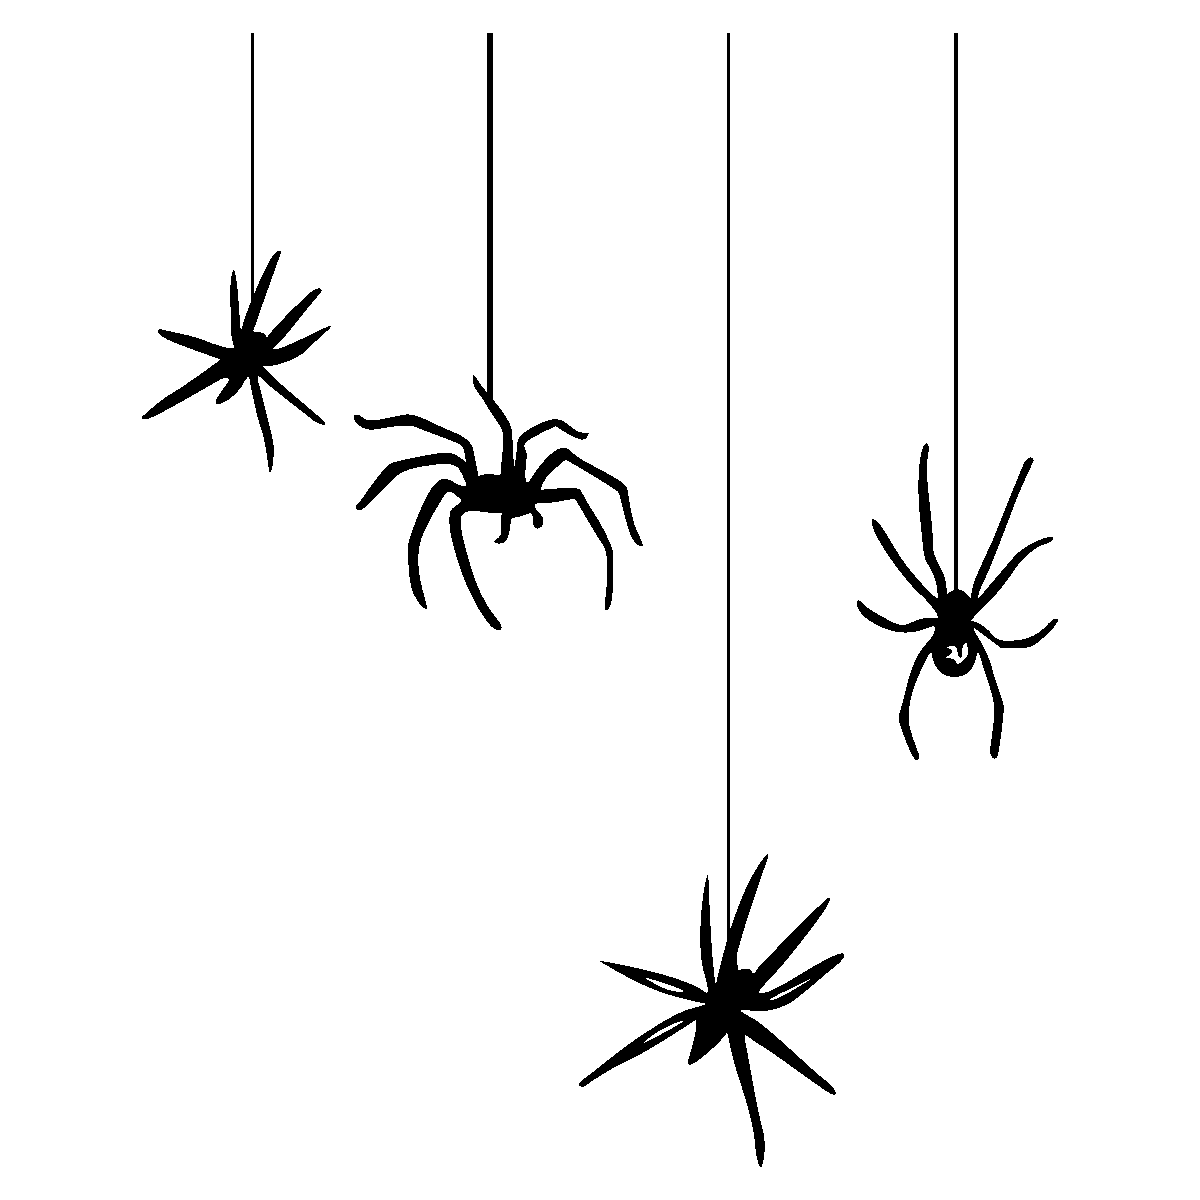 Halloween spiders hanging from web clipart image black and white stock 28+ Collection of Halloween Hanging Spider Clipart | High quality ... image black and white stock